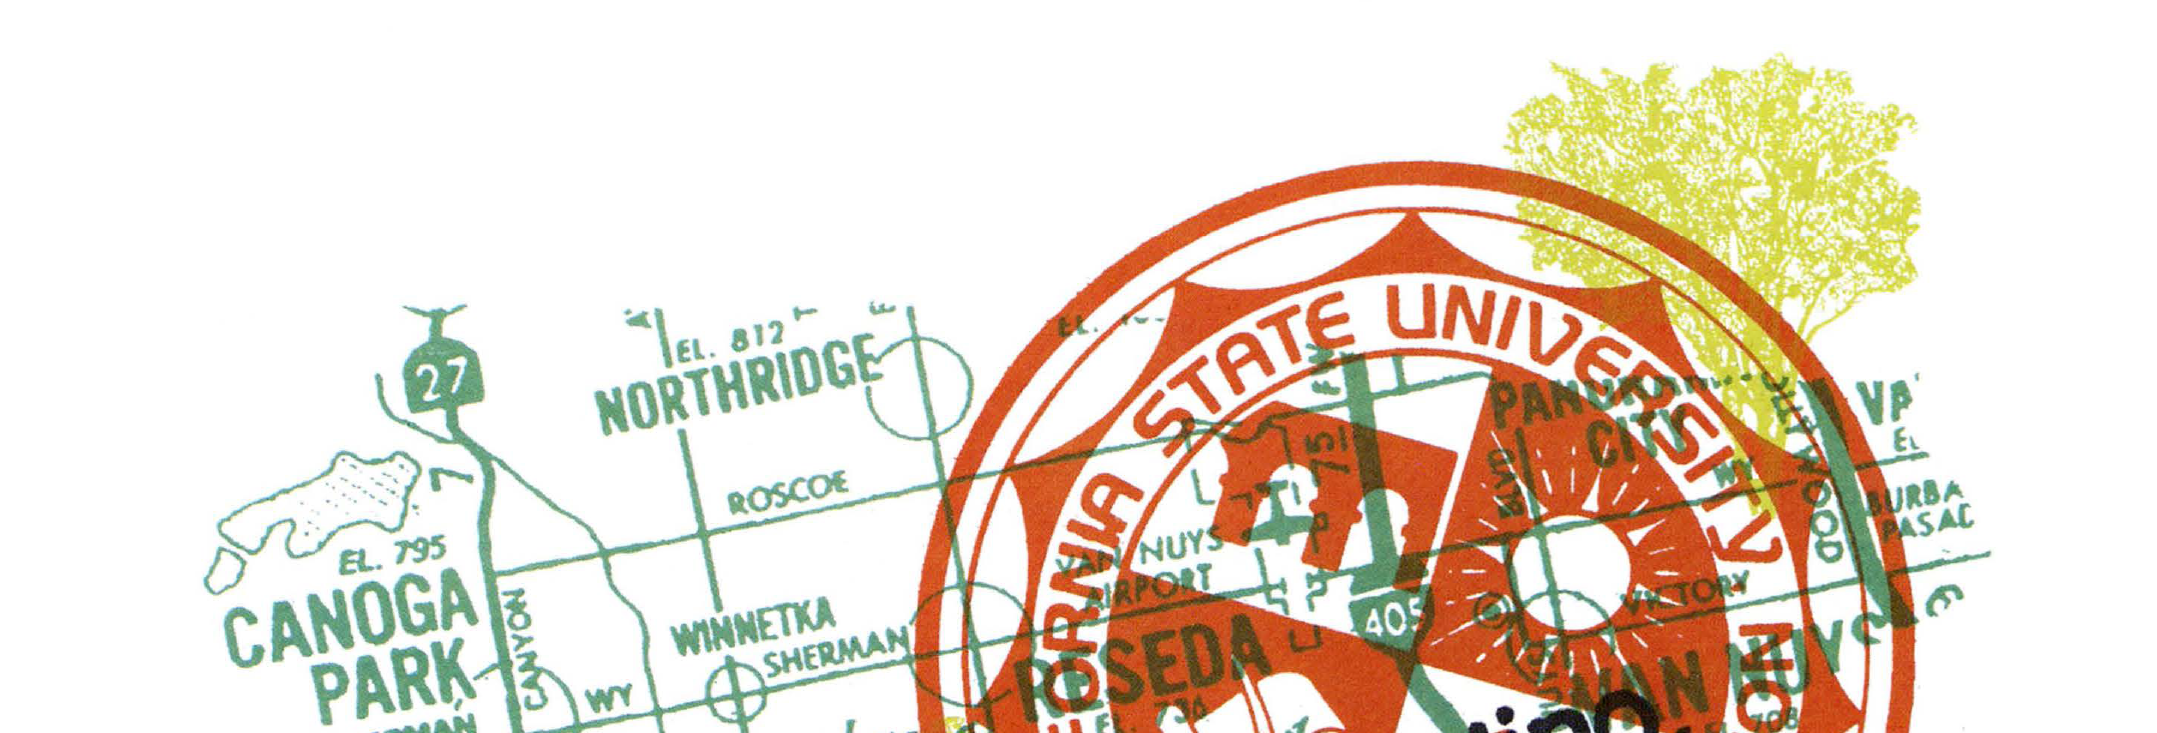 Overlapped images of a CSUN map and stamp